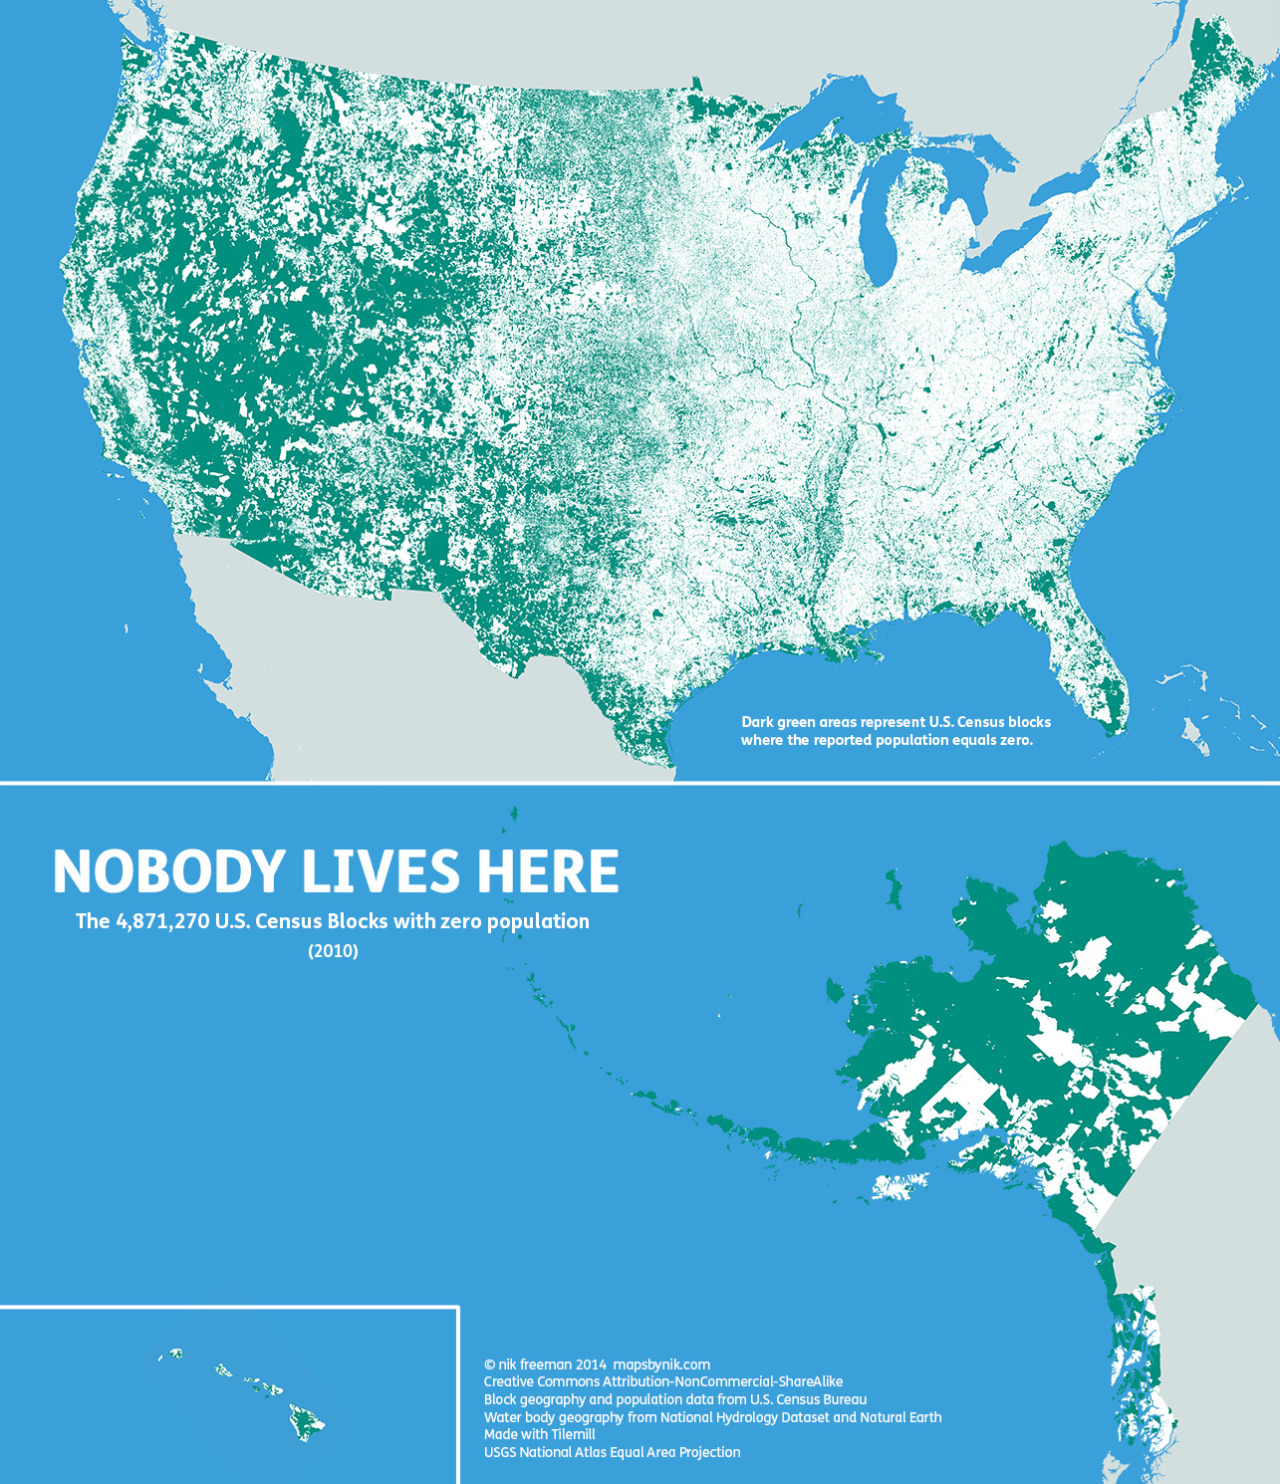 "Nobody lives here: The nearly 5 million Census Blocks with zero population  A Block is the smallest area unit used by the U.S. Census Bureau for tabulating statistics. As of the 2010 census, the United States consists of 11,078,300 Census Blocks. Of them, 4,871,270 blocks totaling 4.61 million square kilometers were reported to have no population living inside them. Despite having a population of more than 310 million people, 47 percent of the USA remains unoccupied.  Green shading indicates unoccupied Census Blocks. A single inhabitant is enough to omit a block from shading  Quick update: If you're the kind of map lover who cares about cartographic accuracy, check out the new version which fixes the Gulf of California. If you save this map for your own projects, please use this one instead.  Map observations  The map tends to highlight two types of areas:  places where human habitation is physically restrictive or impossible, and places where human habitation is prohibited by social or legal convention. Water features such lakes, rivers, swamps and floodplains are revealed as places where it is hard for people to live. In addition, the mountains and deserts of the West, with their hostility to human survival, remain largely void of permanent population.  Of the places where settlement is prohibited, the most apparent are wilderness protection and recreational areas (such as national and state parks) and military bases. At the national and regional scales, these places appear as large green tracts surrounded by otherwise populated countryside.  At the local level, city and county parks emerge in contrast to their developed urban and suburban surroundings. At this scale, even major roads such as highways and interstates stretch like ribbons across the landscape.  Commercial and industrial areas are also likely to be green on this map. The local shopping mall, an office park, a warehouse district or a factory may have their own Census Blocks. But if people don't live there, they will be considered ""uninhabited"". So it should be noted that just because a block is unoccupied, that does not mean it is undeveloped.  Perhaps the two most notable anomalies on the map occur in Maine and the Dakotas. Northern Maine is conspicuously uninhabited. Despite being one of the earliest regions in North America to be settled by Europeans, the population there remains so low that large portions of the state's interior have yet to be politically organized.  In the Dakotas, the border between North and South appears to be unexpectedly stark. Geographic phenomena typically do not respect artificial human boundaries. Throughout the rest of the map, state lines are often difficult to distinguish. But in the Dakotas, northern South Dakota is quite distinct from southern North Dakota. This is especially surprising considering that the county-level population density on both sides of the border is about the same at less than 10 people per square mile.  Finally, the differences between the eastern and western halves of the contiguous 48 states are particularly stark to me. In the east, with its larger population, unpopulated places are more likely to stand out on the map. In the west, the opposite is true. There, population centers stand out against the wilderness.  ::  Ultimately, I made this map to show a different side of the United States. Human geographers spend so much time thinking about where people are. I thought I might bring some new insight by showing where they are not, adding contrast and context to the typical displays of the country's population geography.  I'm sure I've all but scratched the surface of insight available from examining this map. There's a lot of data here. What trends and patterns do you see?  Errata  The Gulf of California is missing from this version. I guess it got filled in while doing touch ups. Oops. There's a link to a corrected map at the top of the post. Some islands may be missing if they were not a part of the waterbody data sets I used. ::  ©mapsbynik 2014 Creative Commons Attribution-NonCommercial-ShareAlike Block geography and population data from U.S. Census Bureau Water body geography from National Hydrology Dataset and Natural Earth Made with Tilemill USGS National Atlas Equal Area Projection"